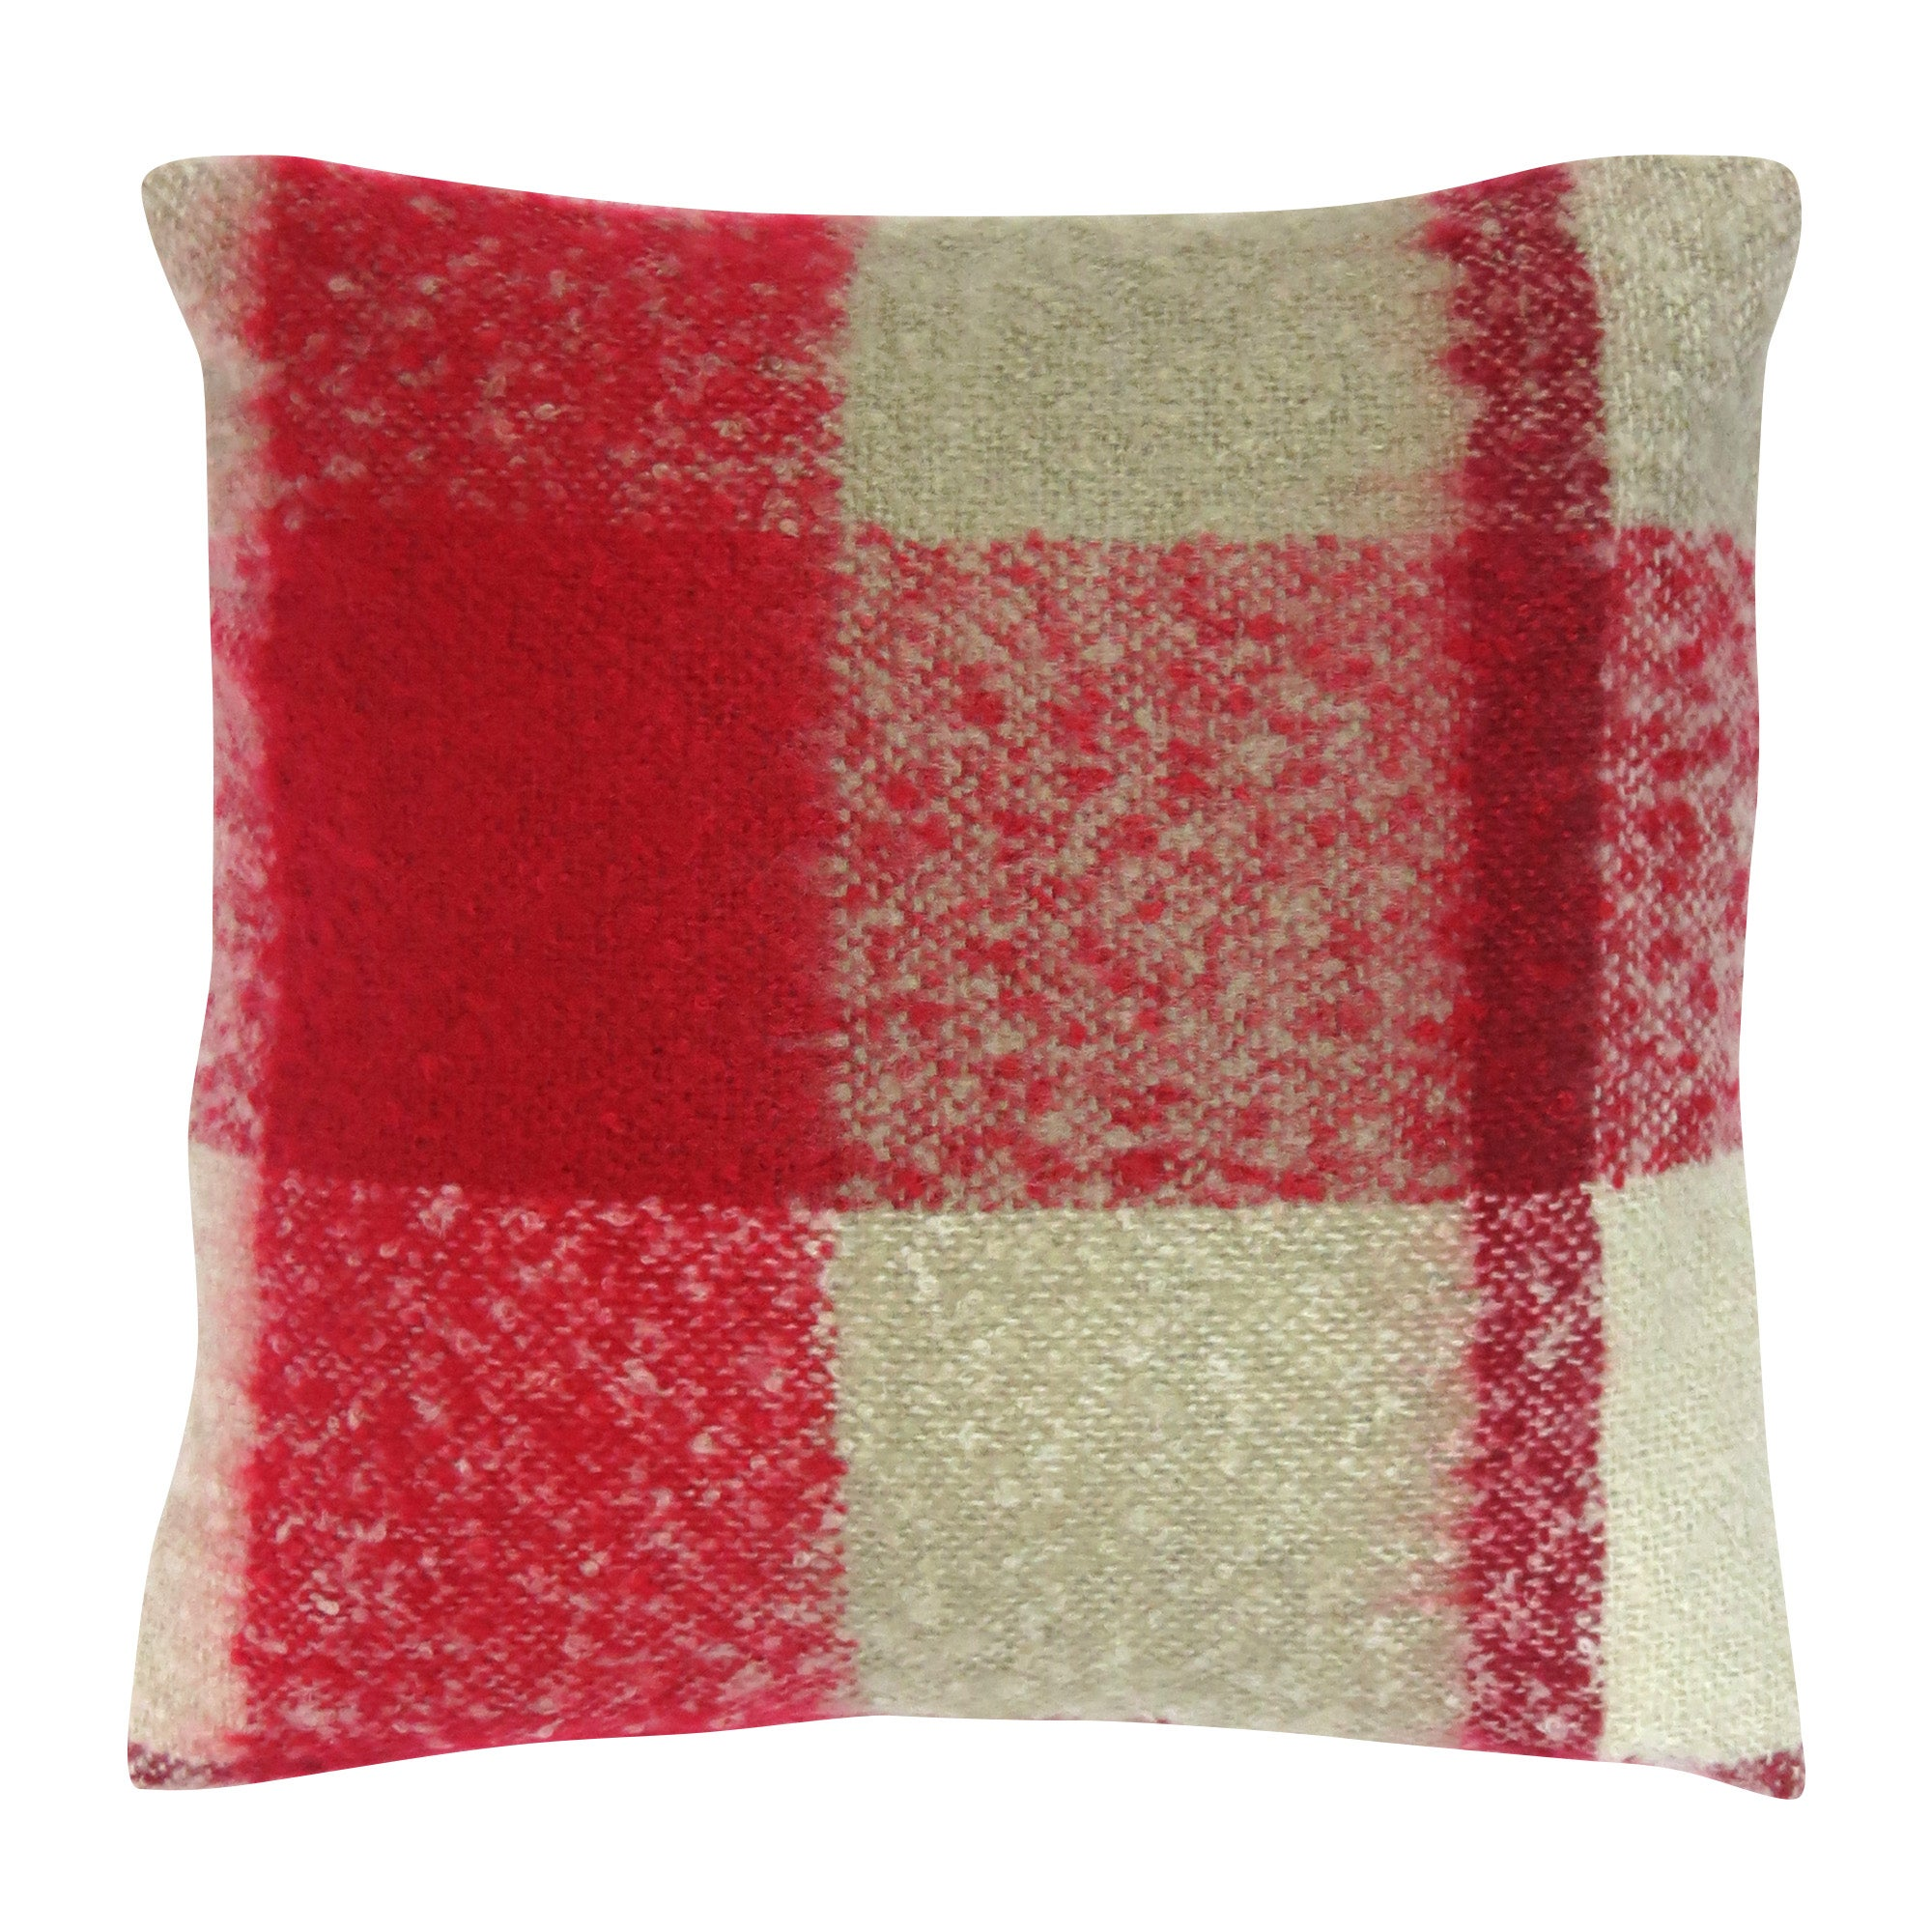 Photo of Checked cushion red